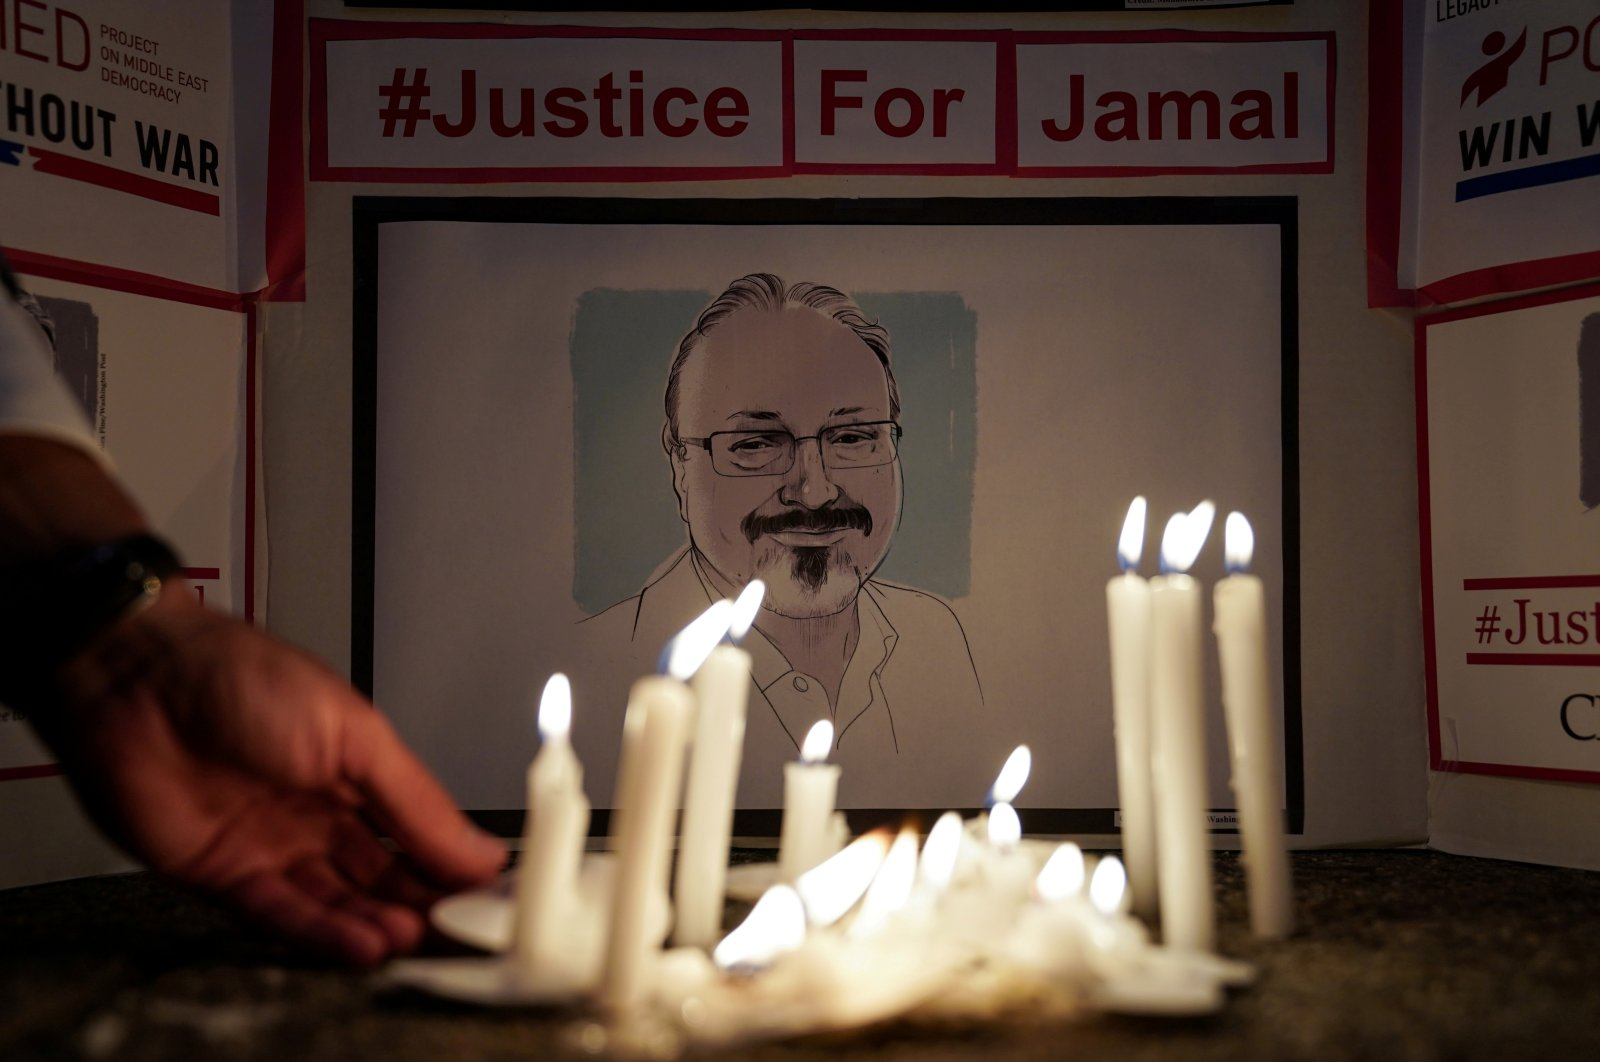 The Committee to Protect Journalists and other press freedom activists hold a candlelight vigil to mark the anniversary of the killing of journalist Jamal Khashoggi at the kingdom's consulate in Istanbul in front of the Saudi Embassy in Washington, D.C., Oct. 2, 2019. (REUTERS)